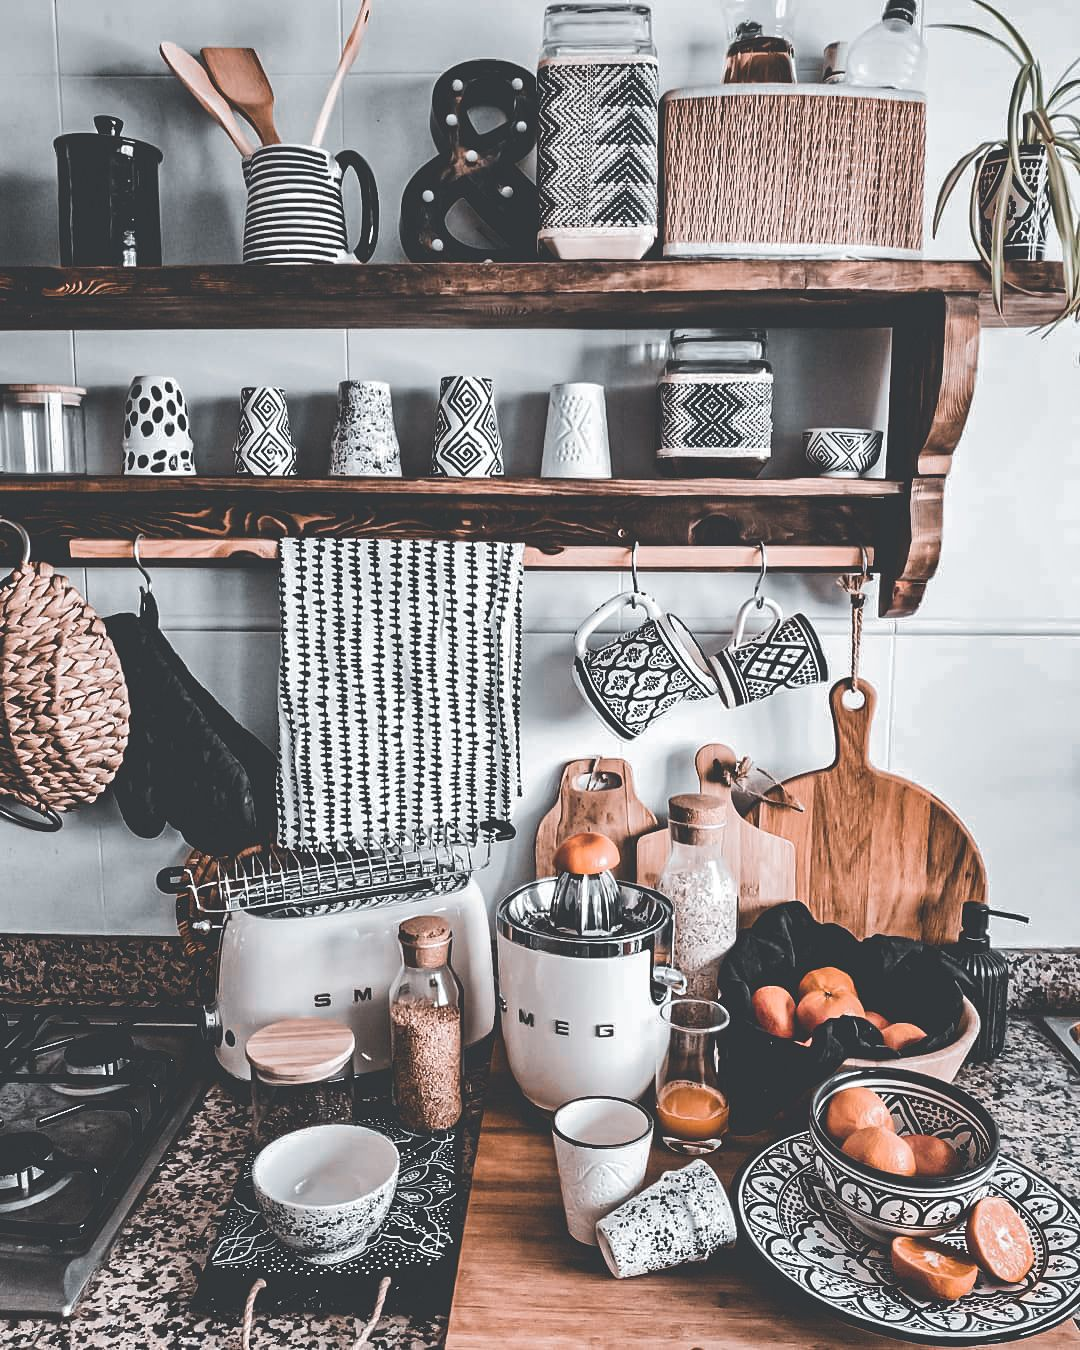 modern boho kitchens 27 chic eclectic style in 2020 boho kitchen eclectic style modern boho on boho chic home decor kitchen id=63710